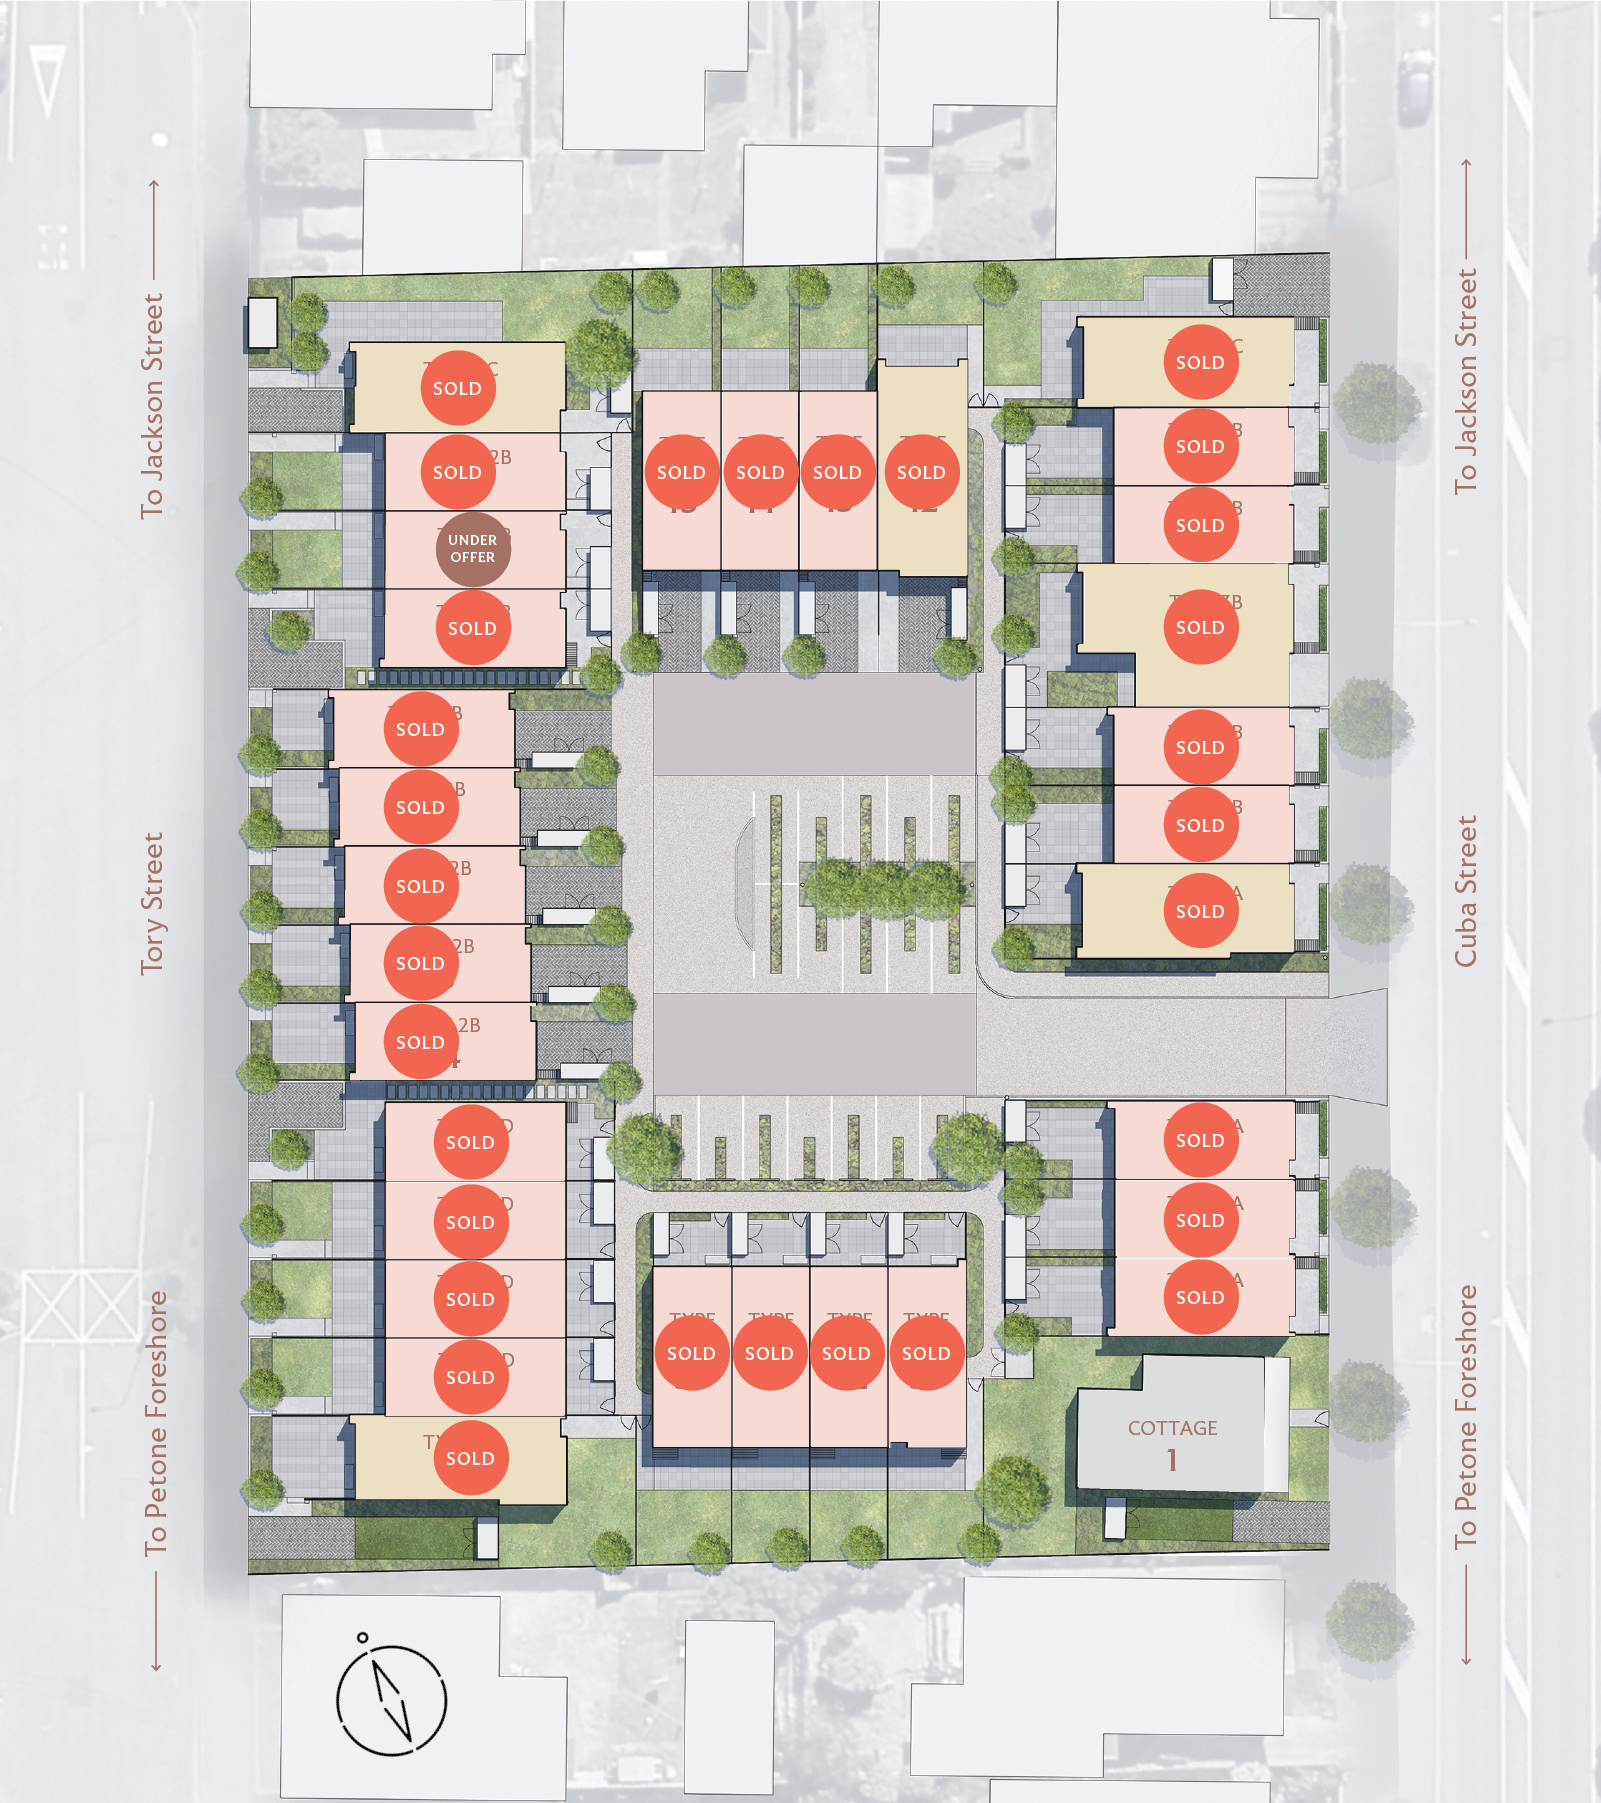 Master Plan image, showing available houses